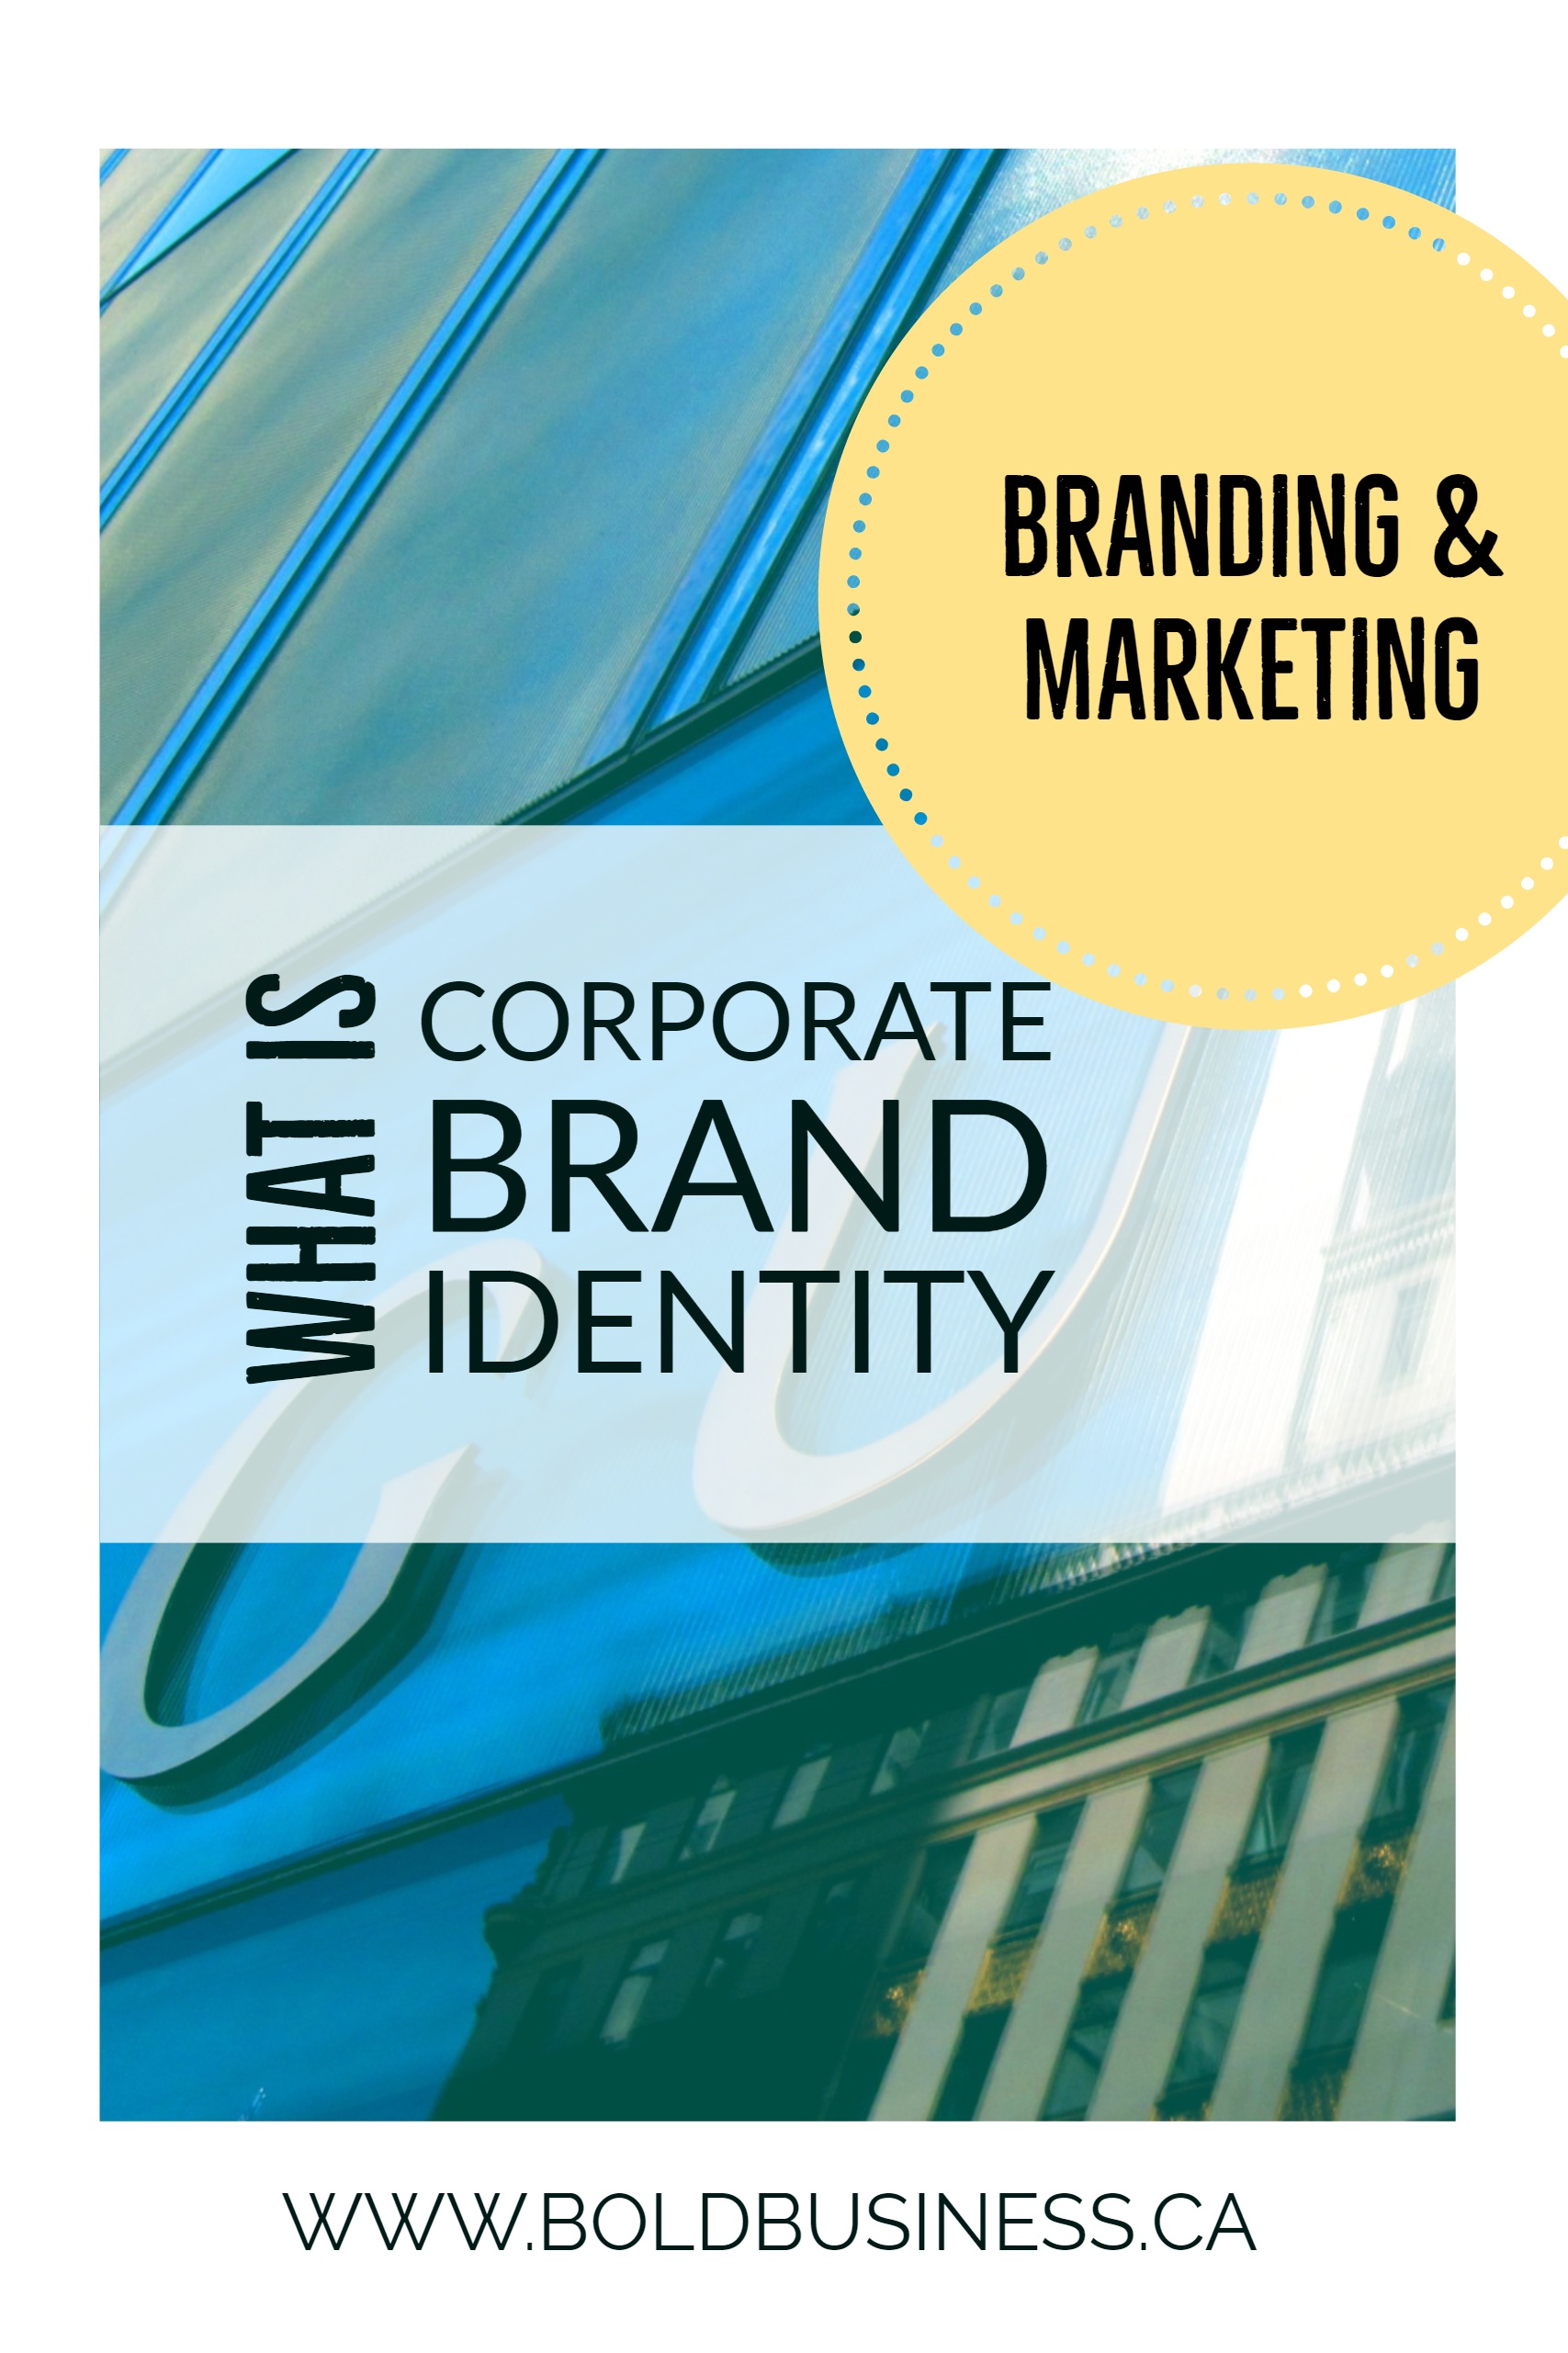 What is Corporate Brand Identity